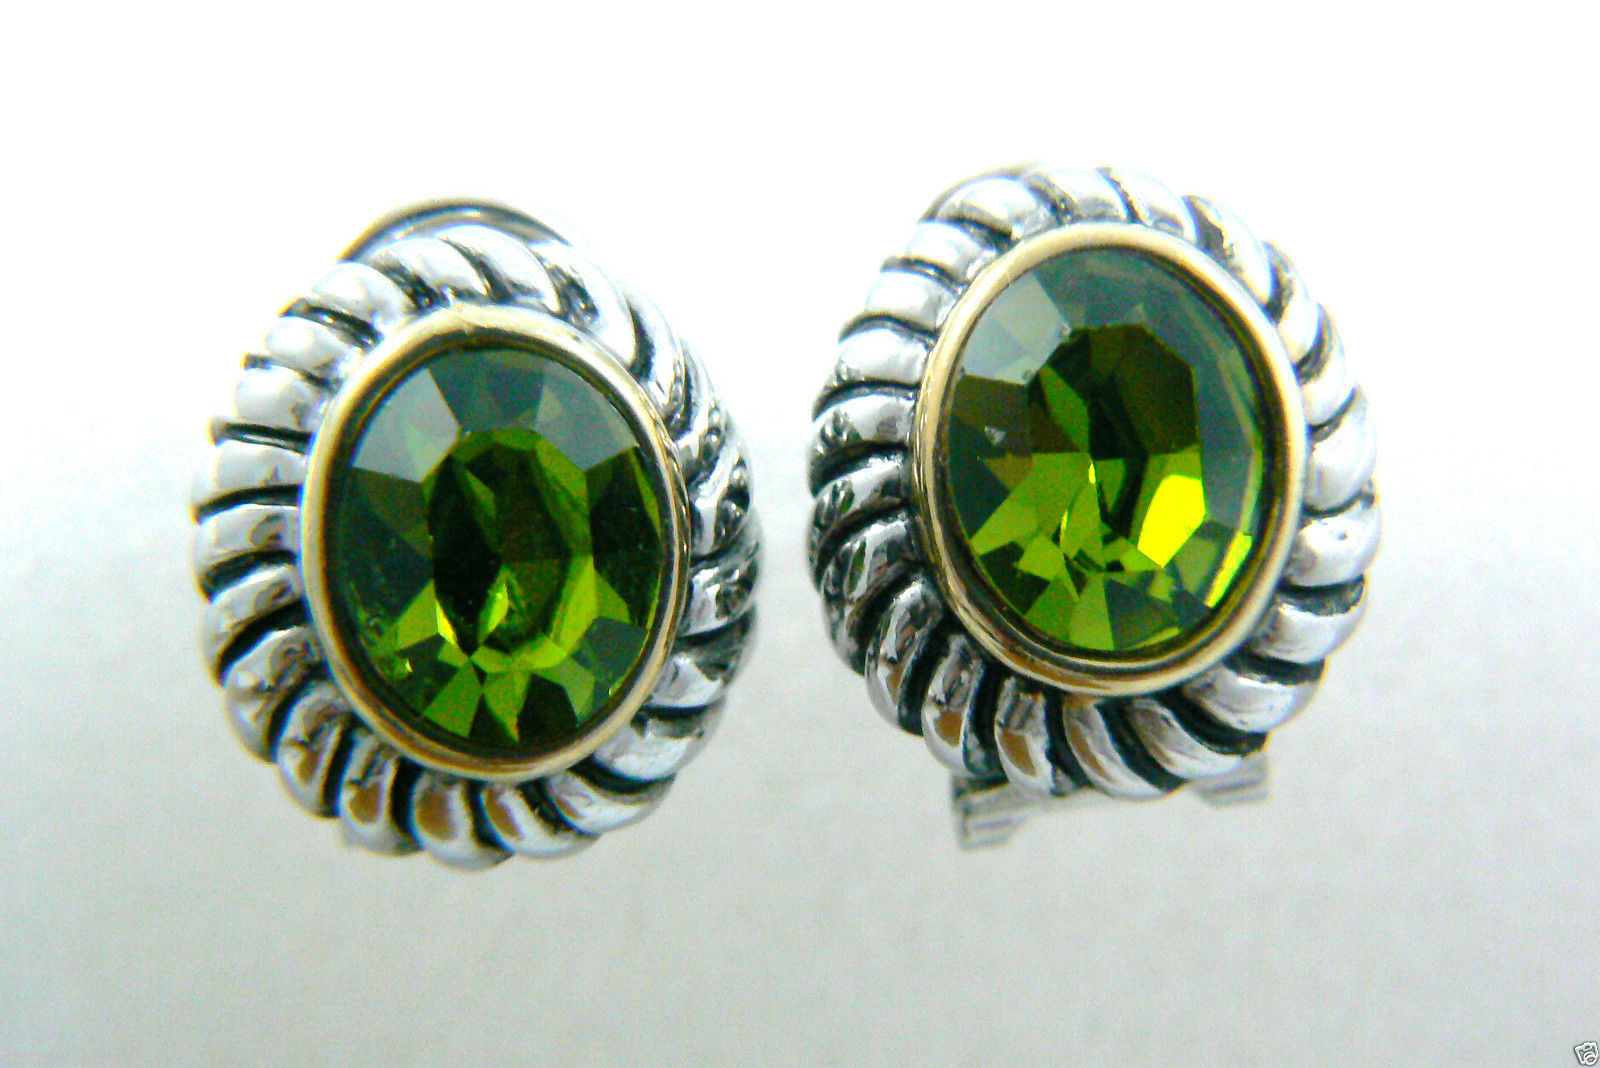 Silver tone Faceted Green Rhinestone crystal oval stud earrings $0 sh new